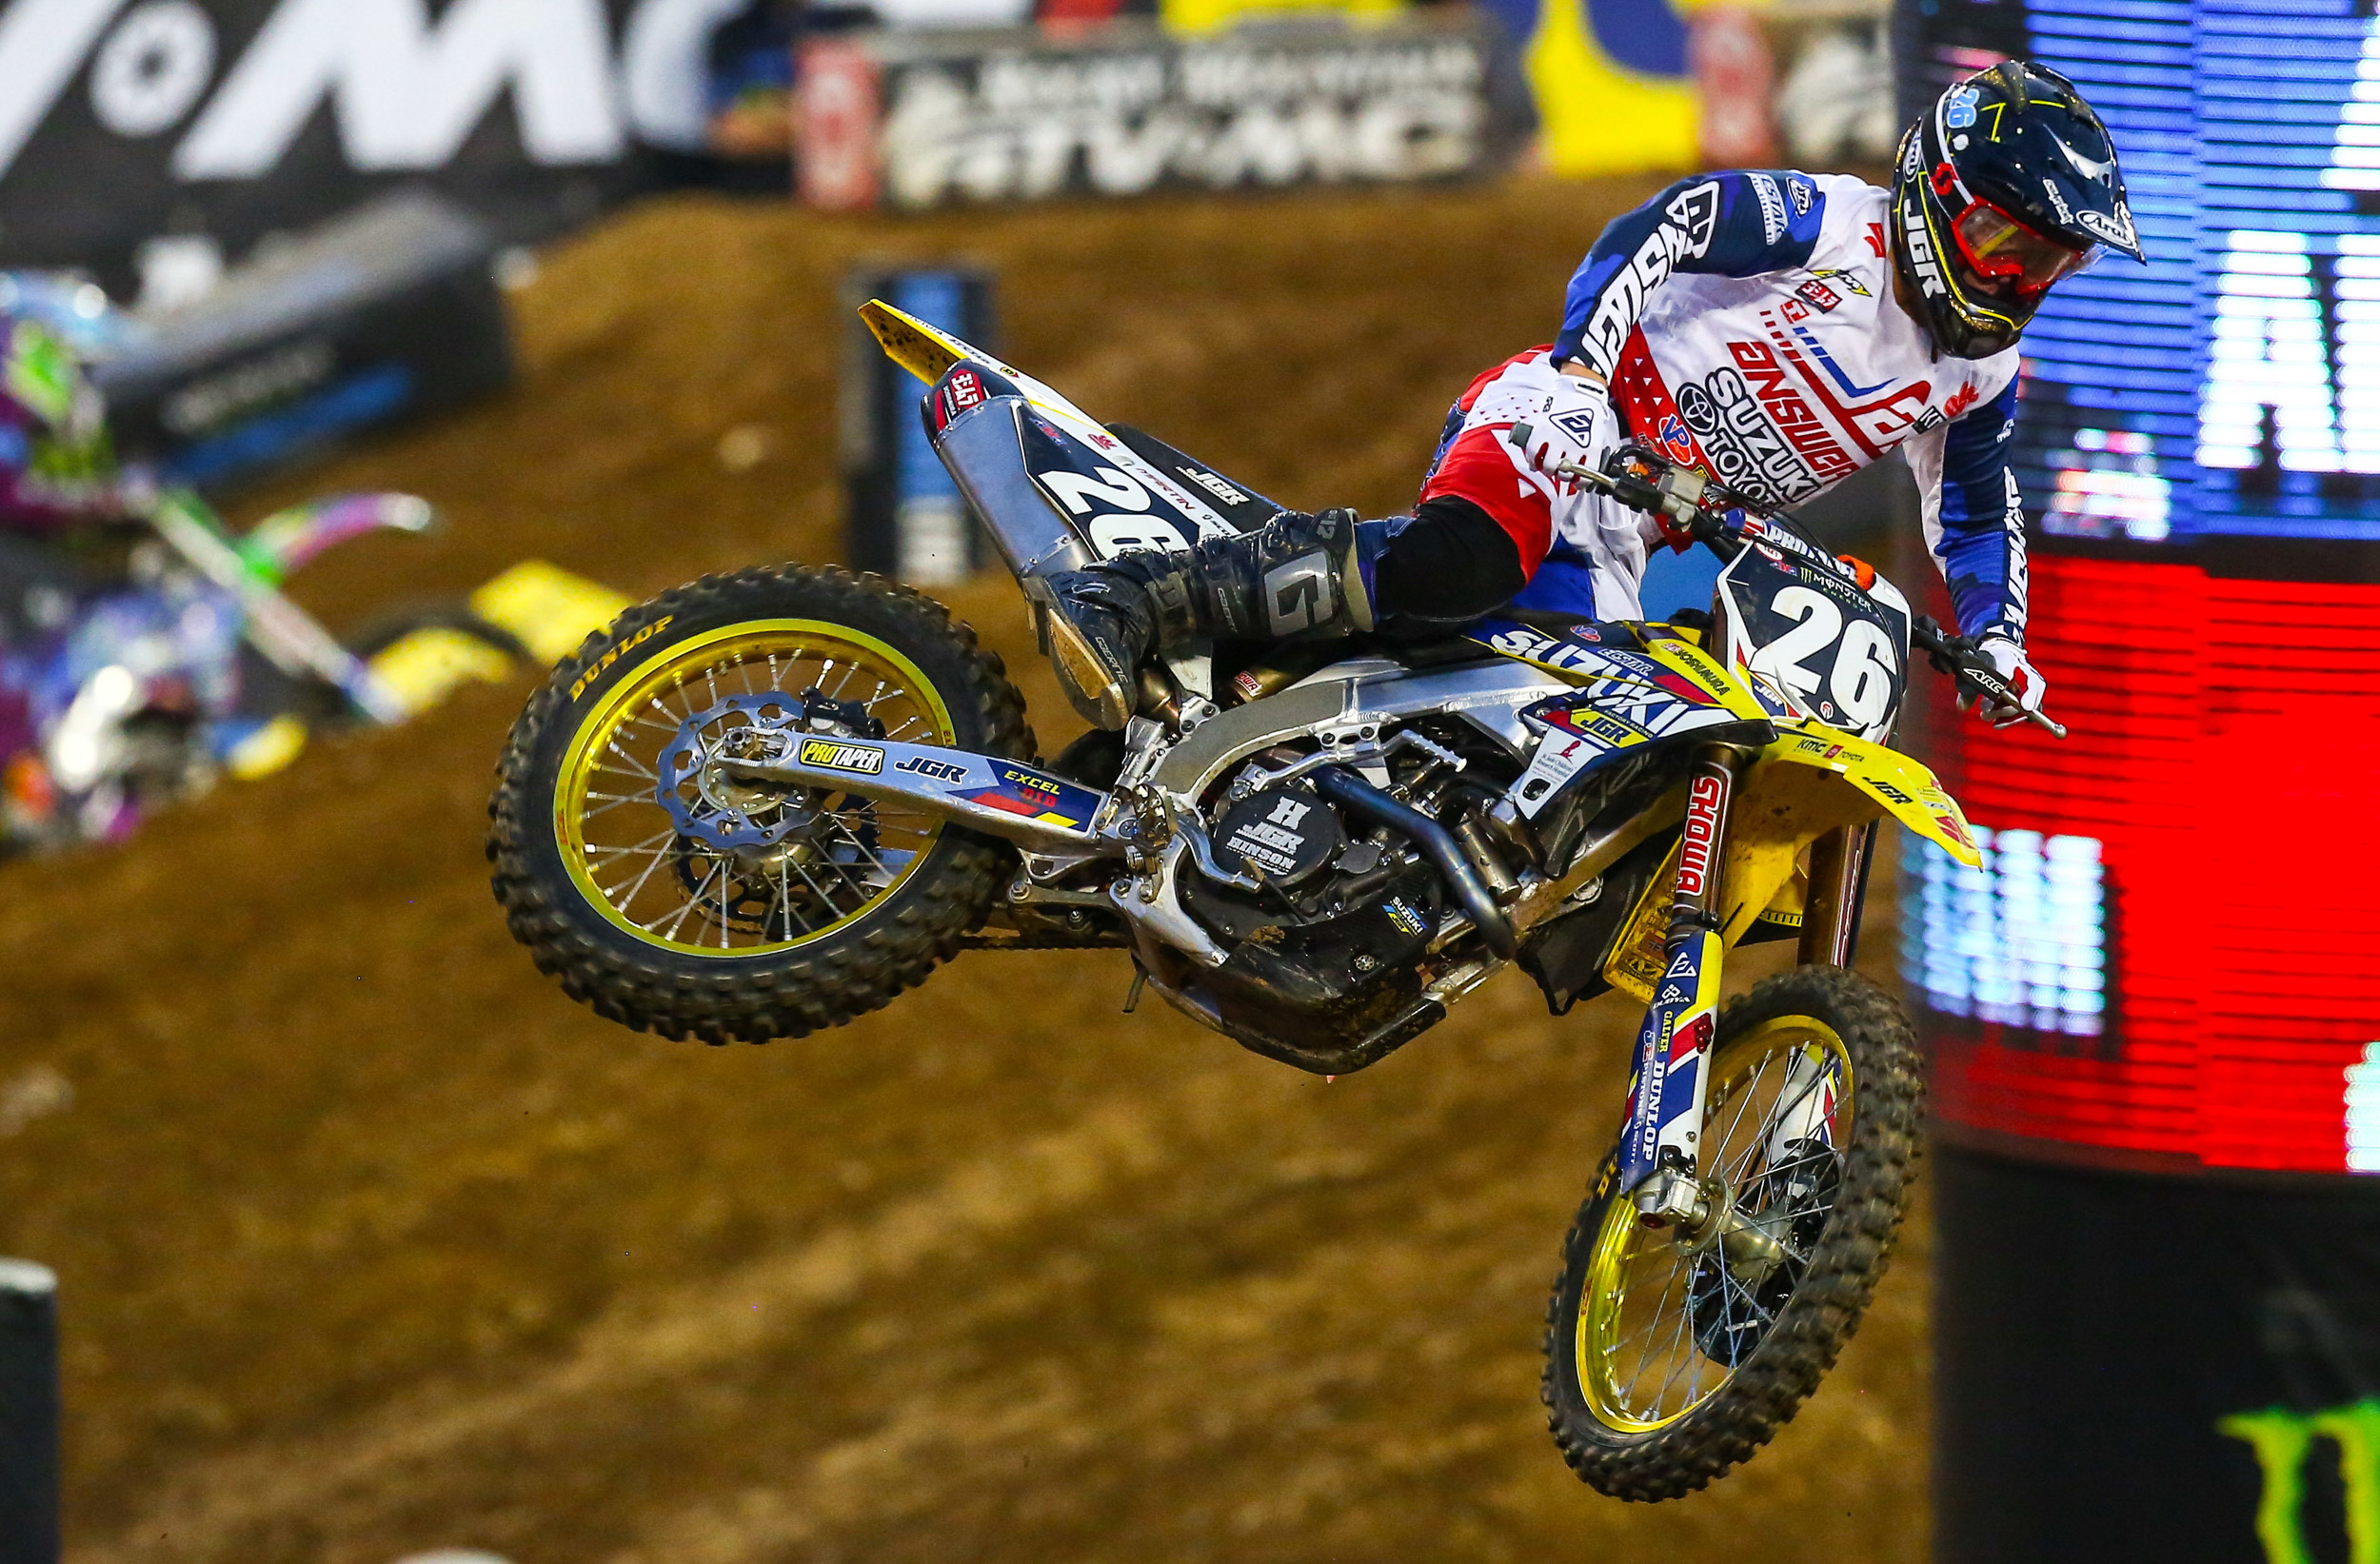 JGRMX - Alex Martin (#26) flew past the checkered flag to grab a top-ten finish on his RM-Z250 - Nashville Monster Energy Supercross